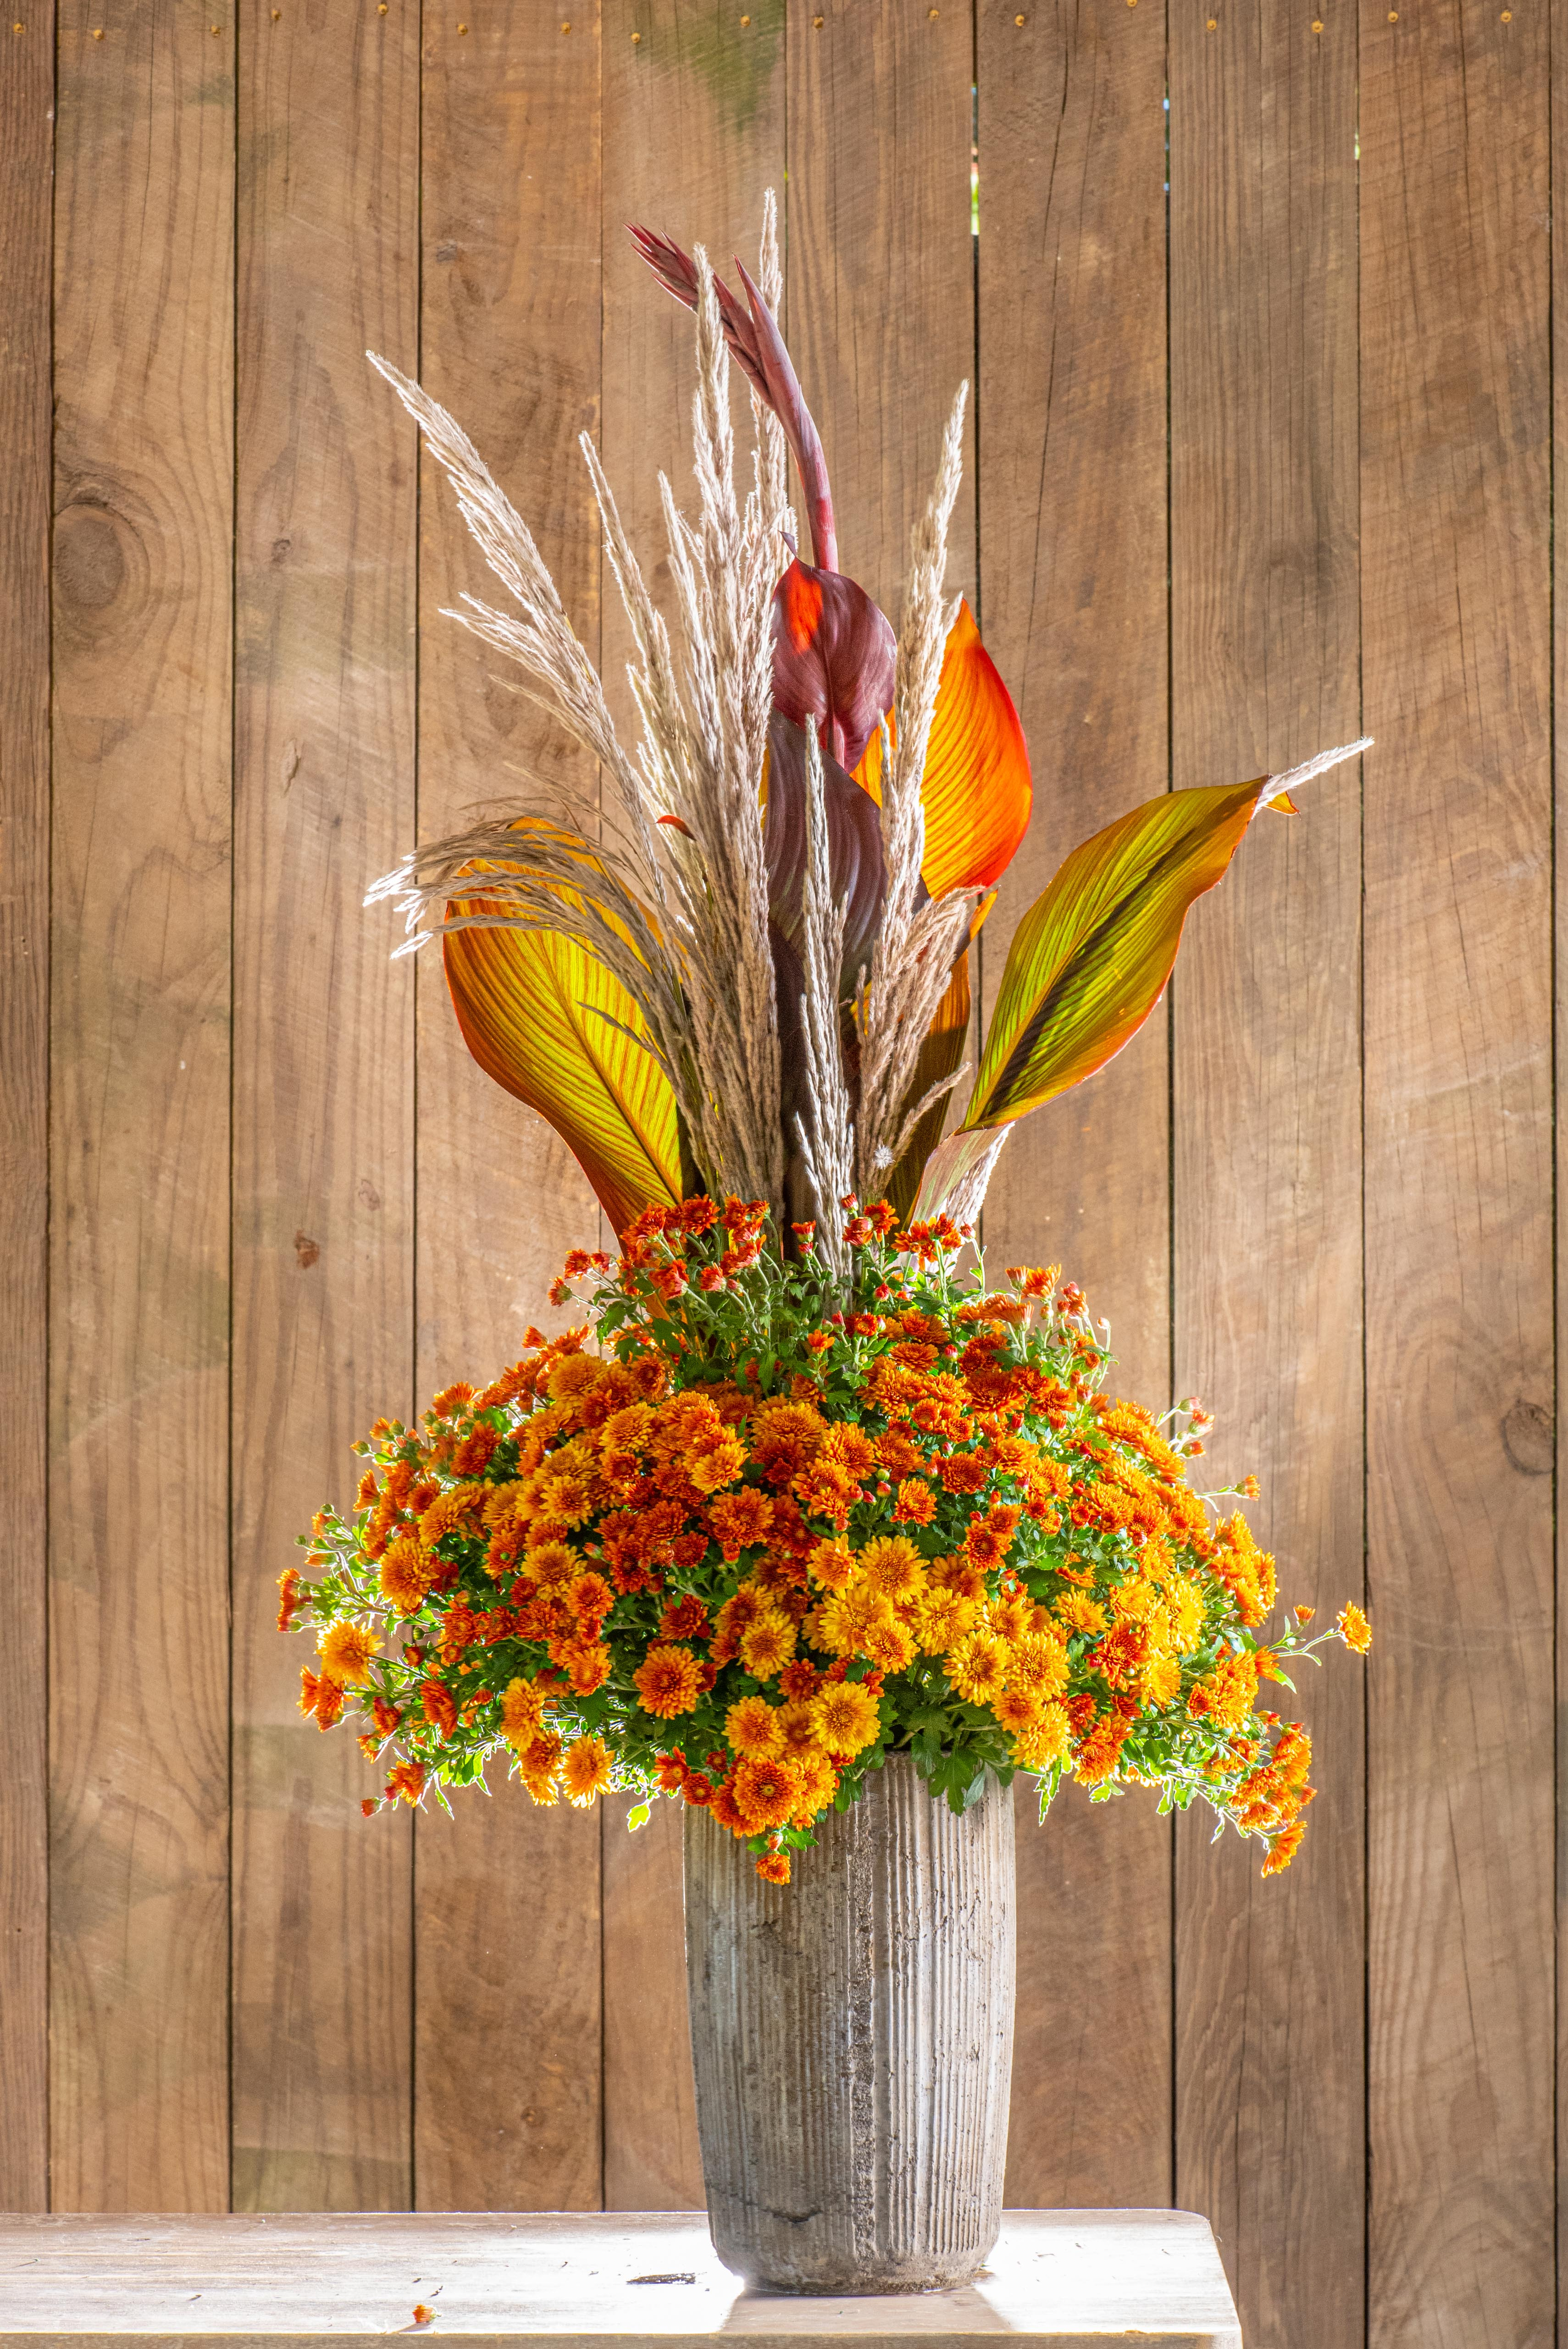 Fall Floral Arrangement with Mums and Dried Grass